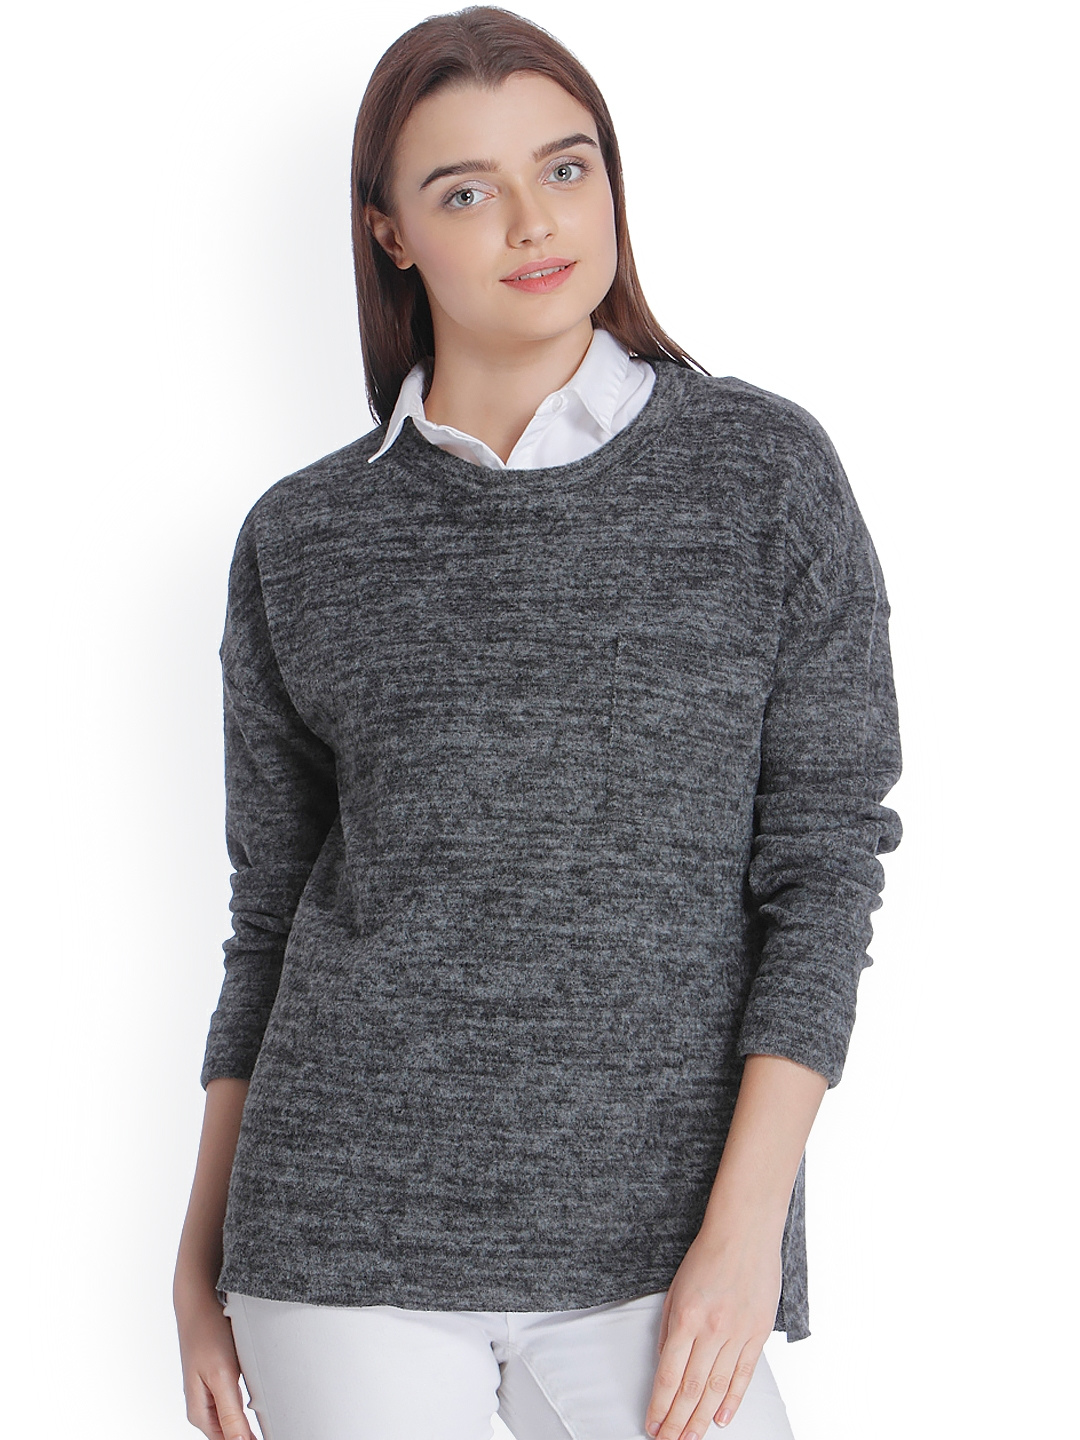 497e2726f87 Buy Vero Moda Women Charcoal Grey Self Design Pullover - Sweaters ...